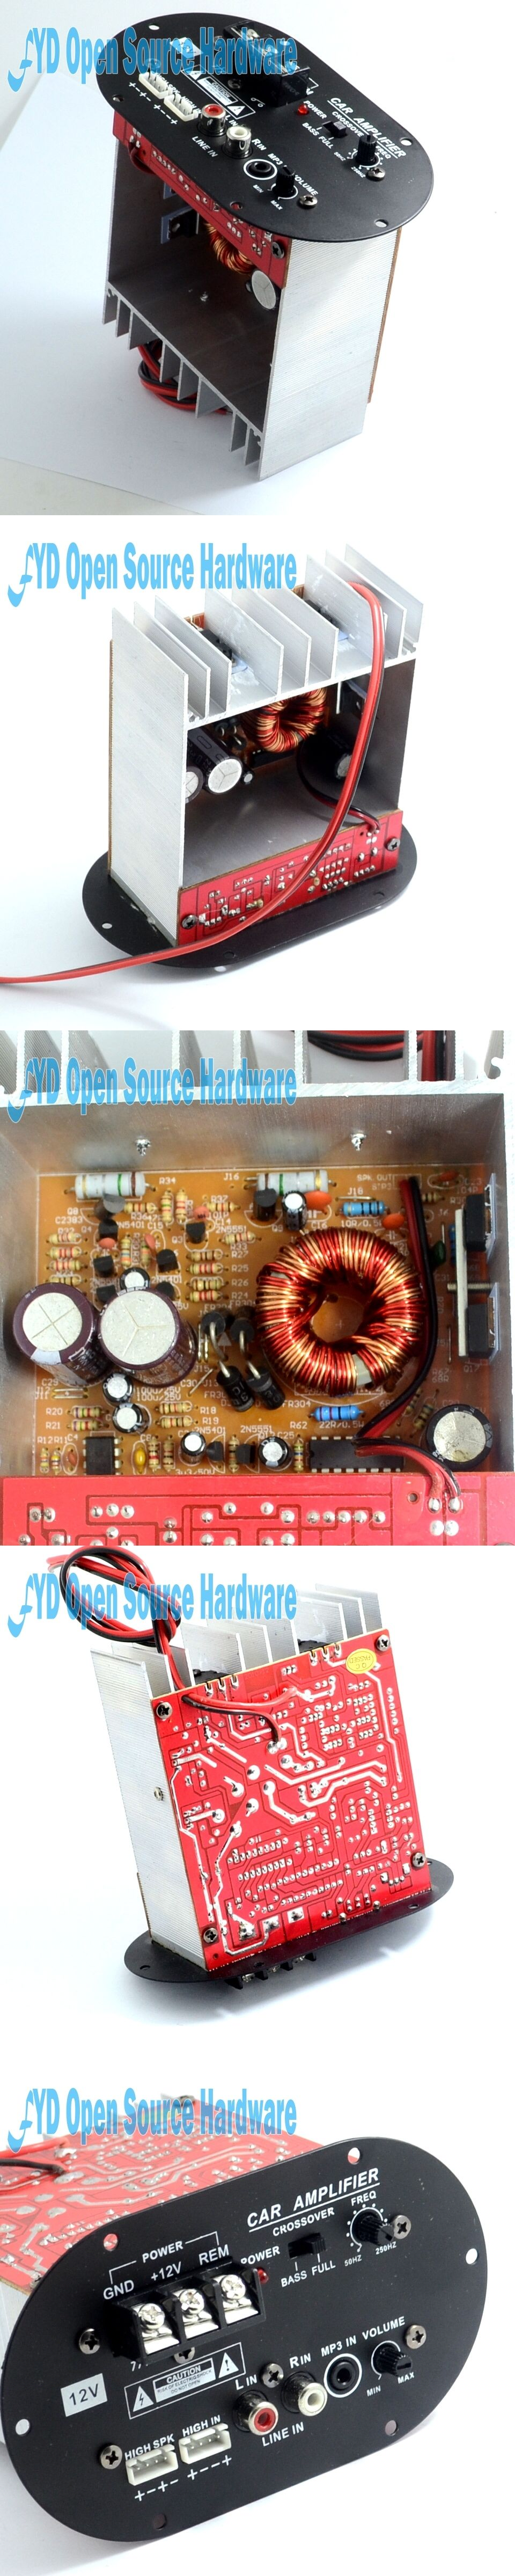 S80b 8 12 Inch Tube Core 12v Car Subwoofer 120w Tritone Pure Bass Amplifier Circuit Board For